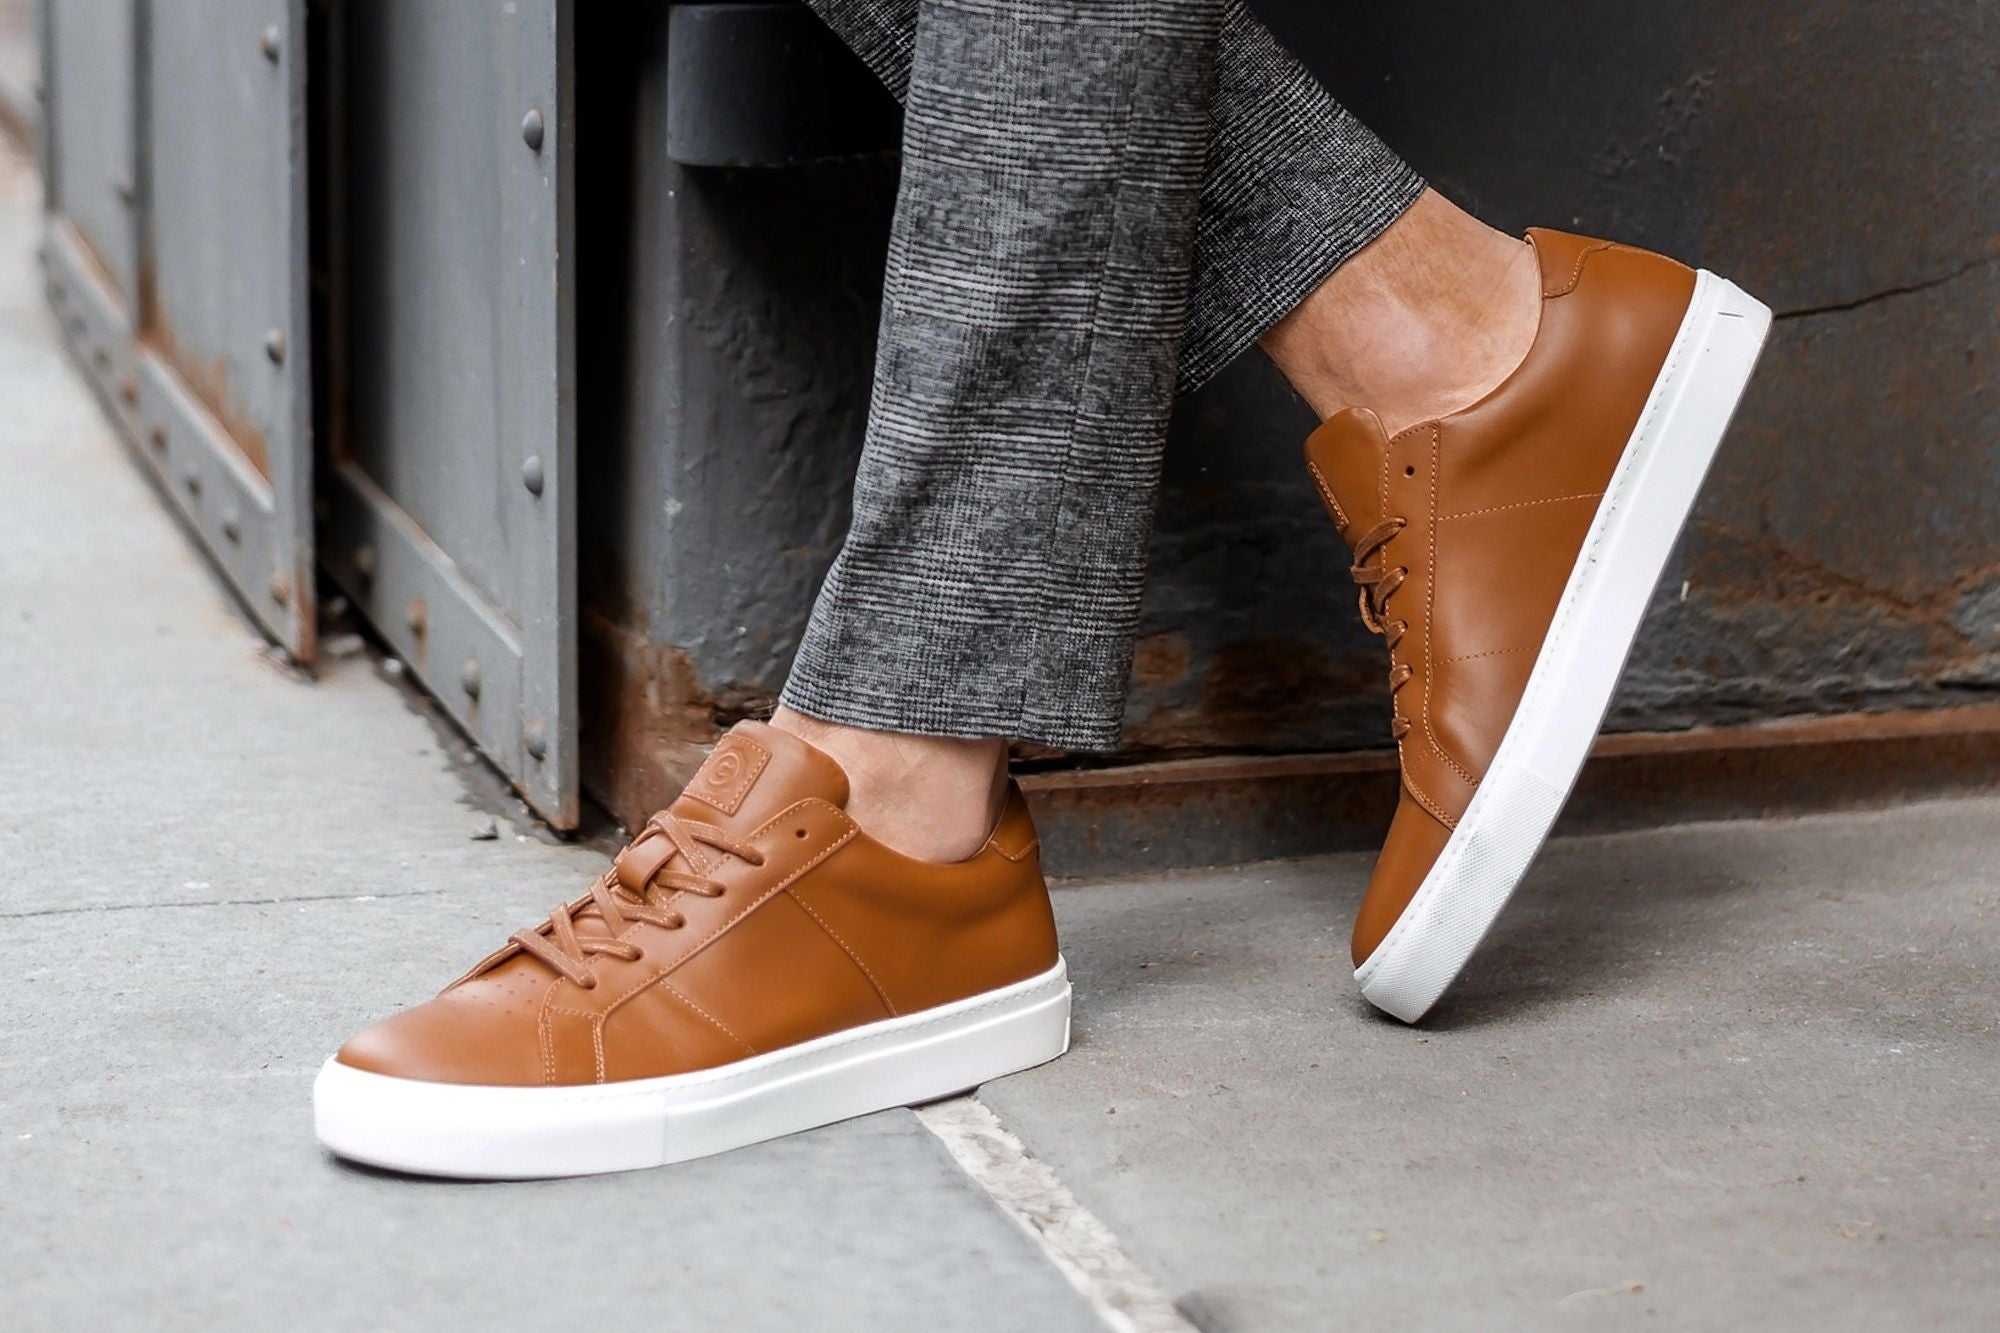 5 Pairs of Sneakers You Can Actually Wear to the Office